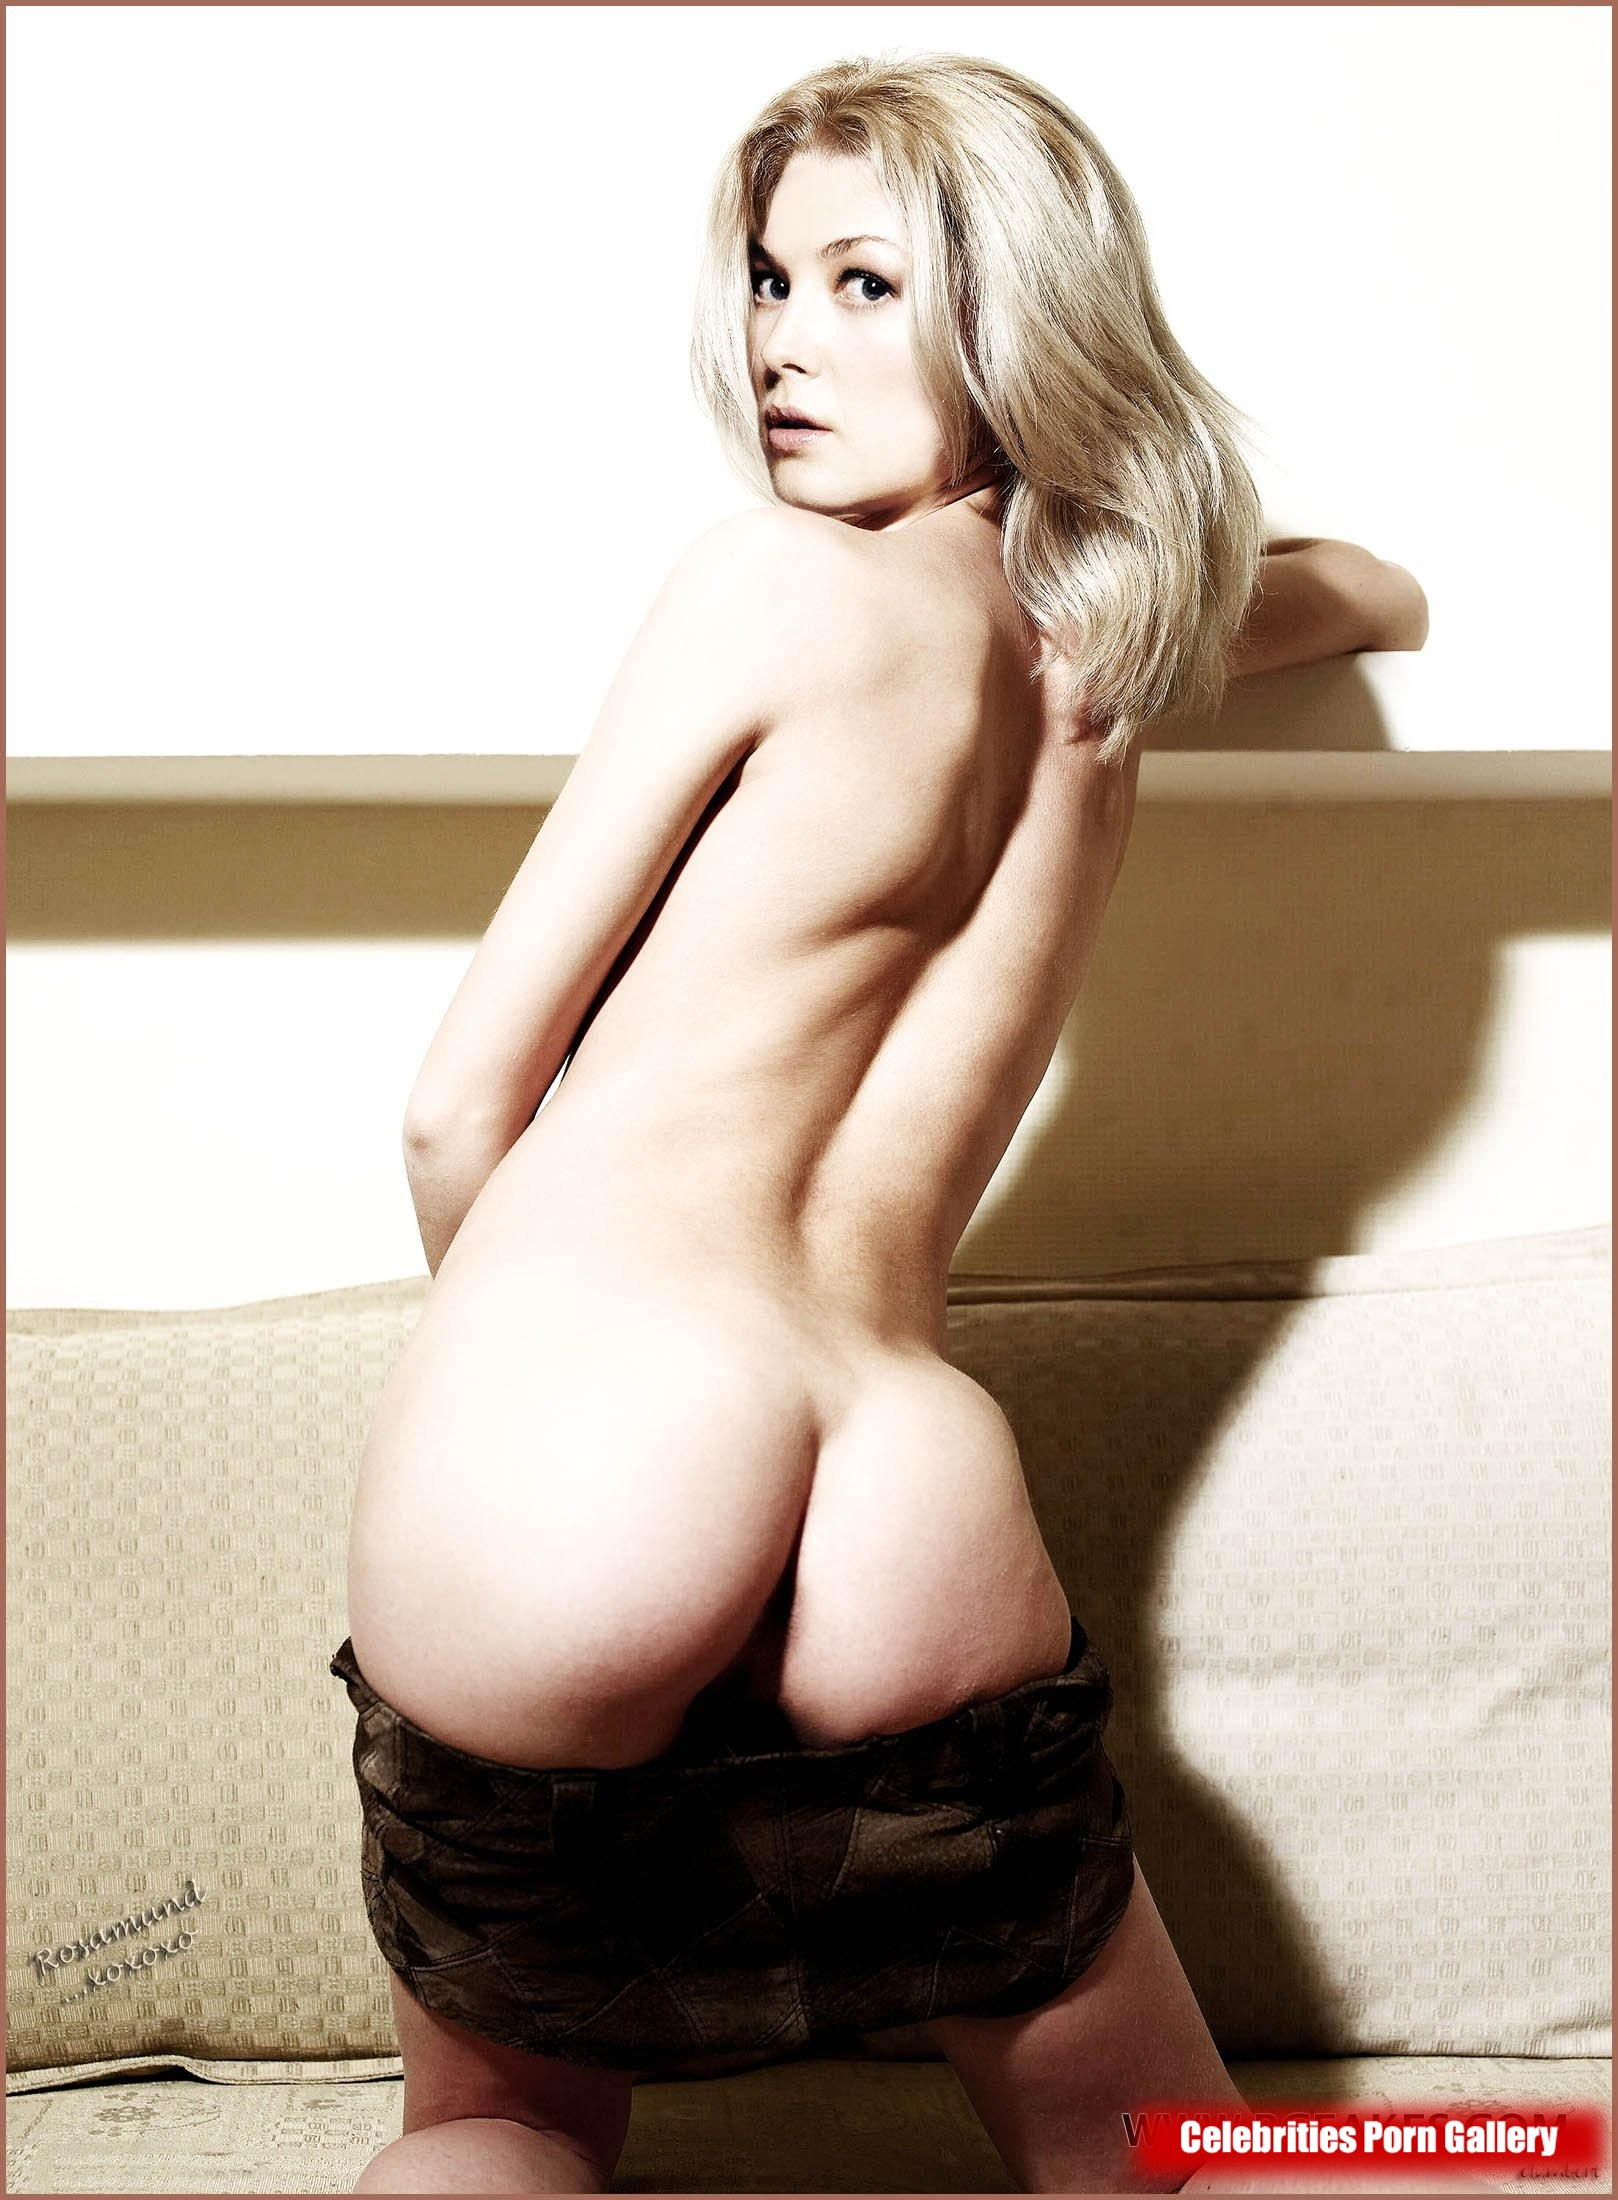 Rosamund pike nude picture